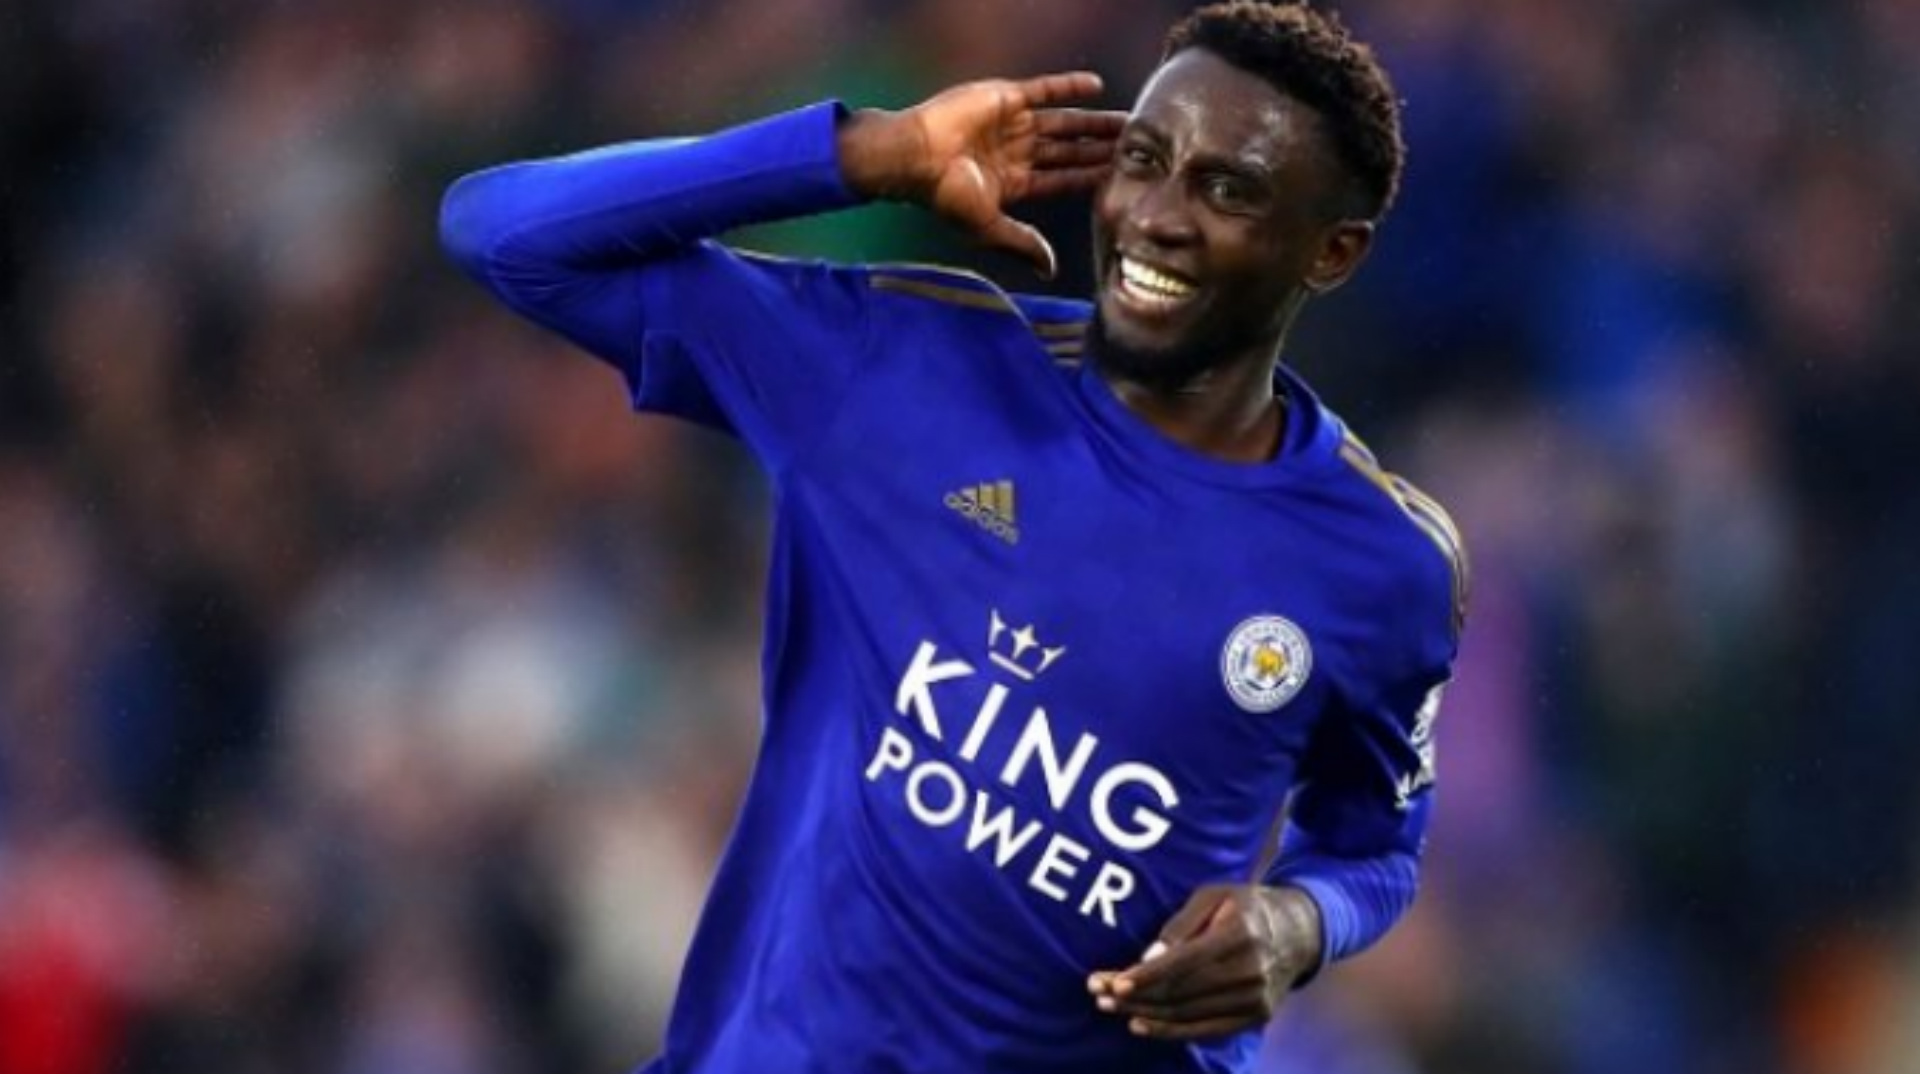 Ndidi returns from injury to help Leicester City beat West Ham United